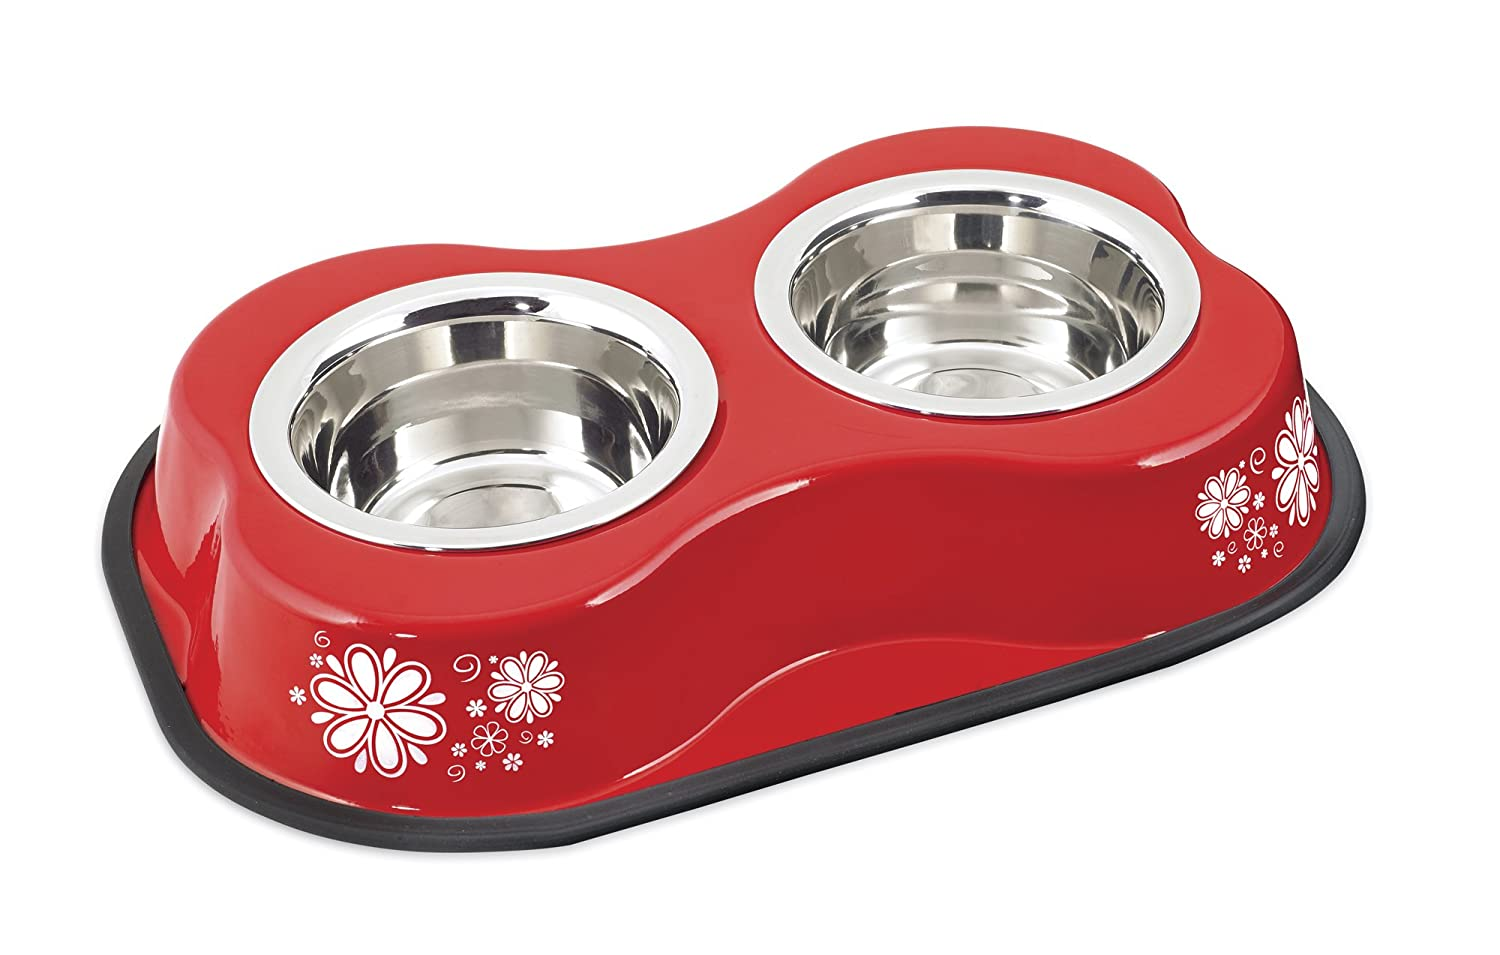 Bone Shaped Double Diner W 2 1pt Stainless Steel Bowls, Flower Pattern Red